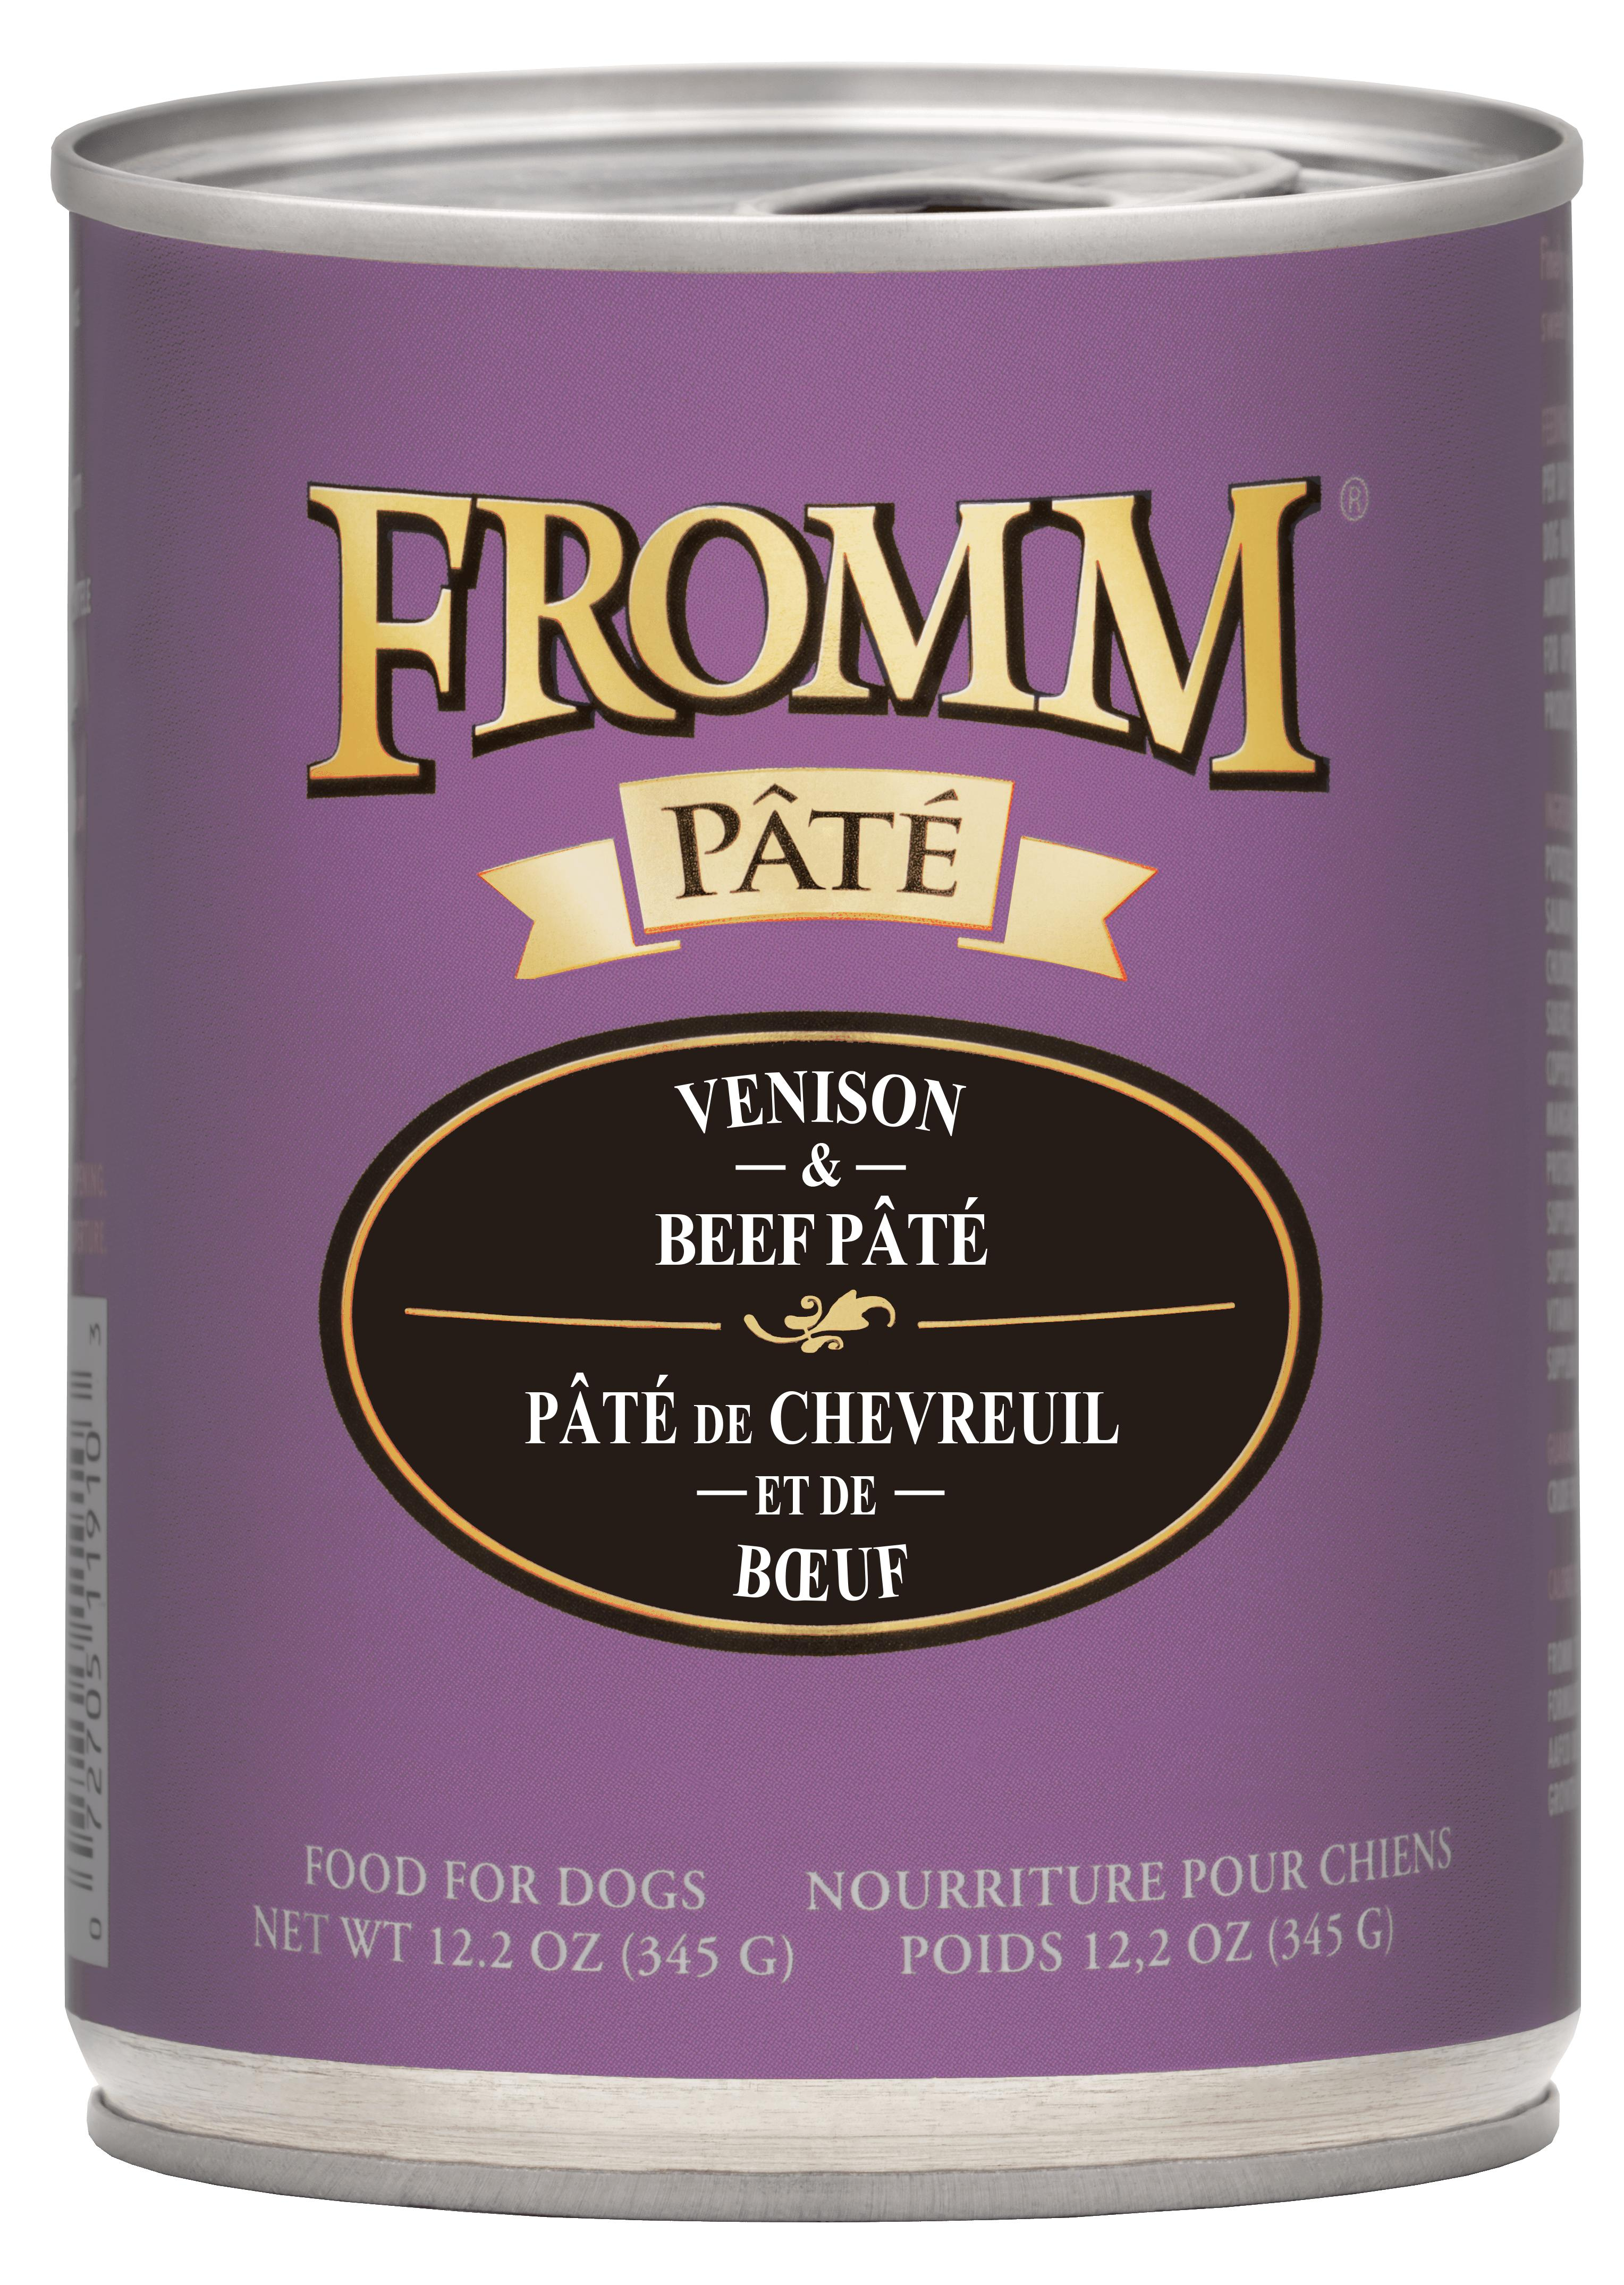 Fromm Venison & Beef Pate Canned Dog Food, 12.2-oz